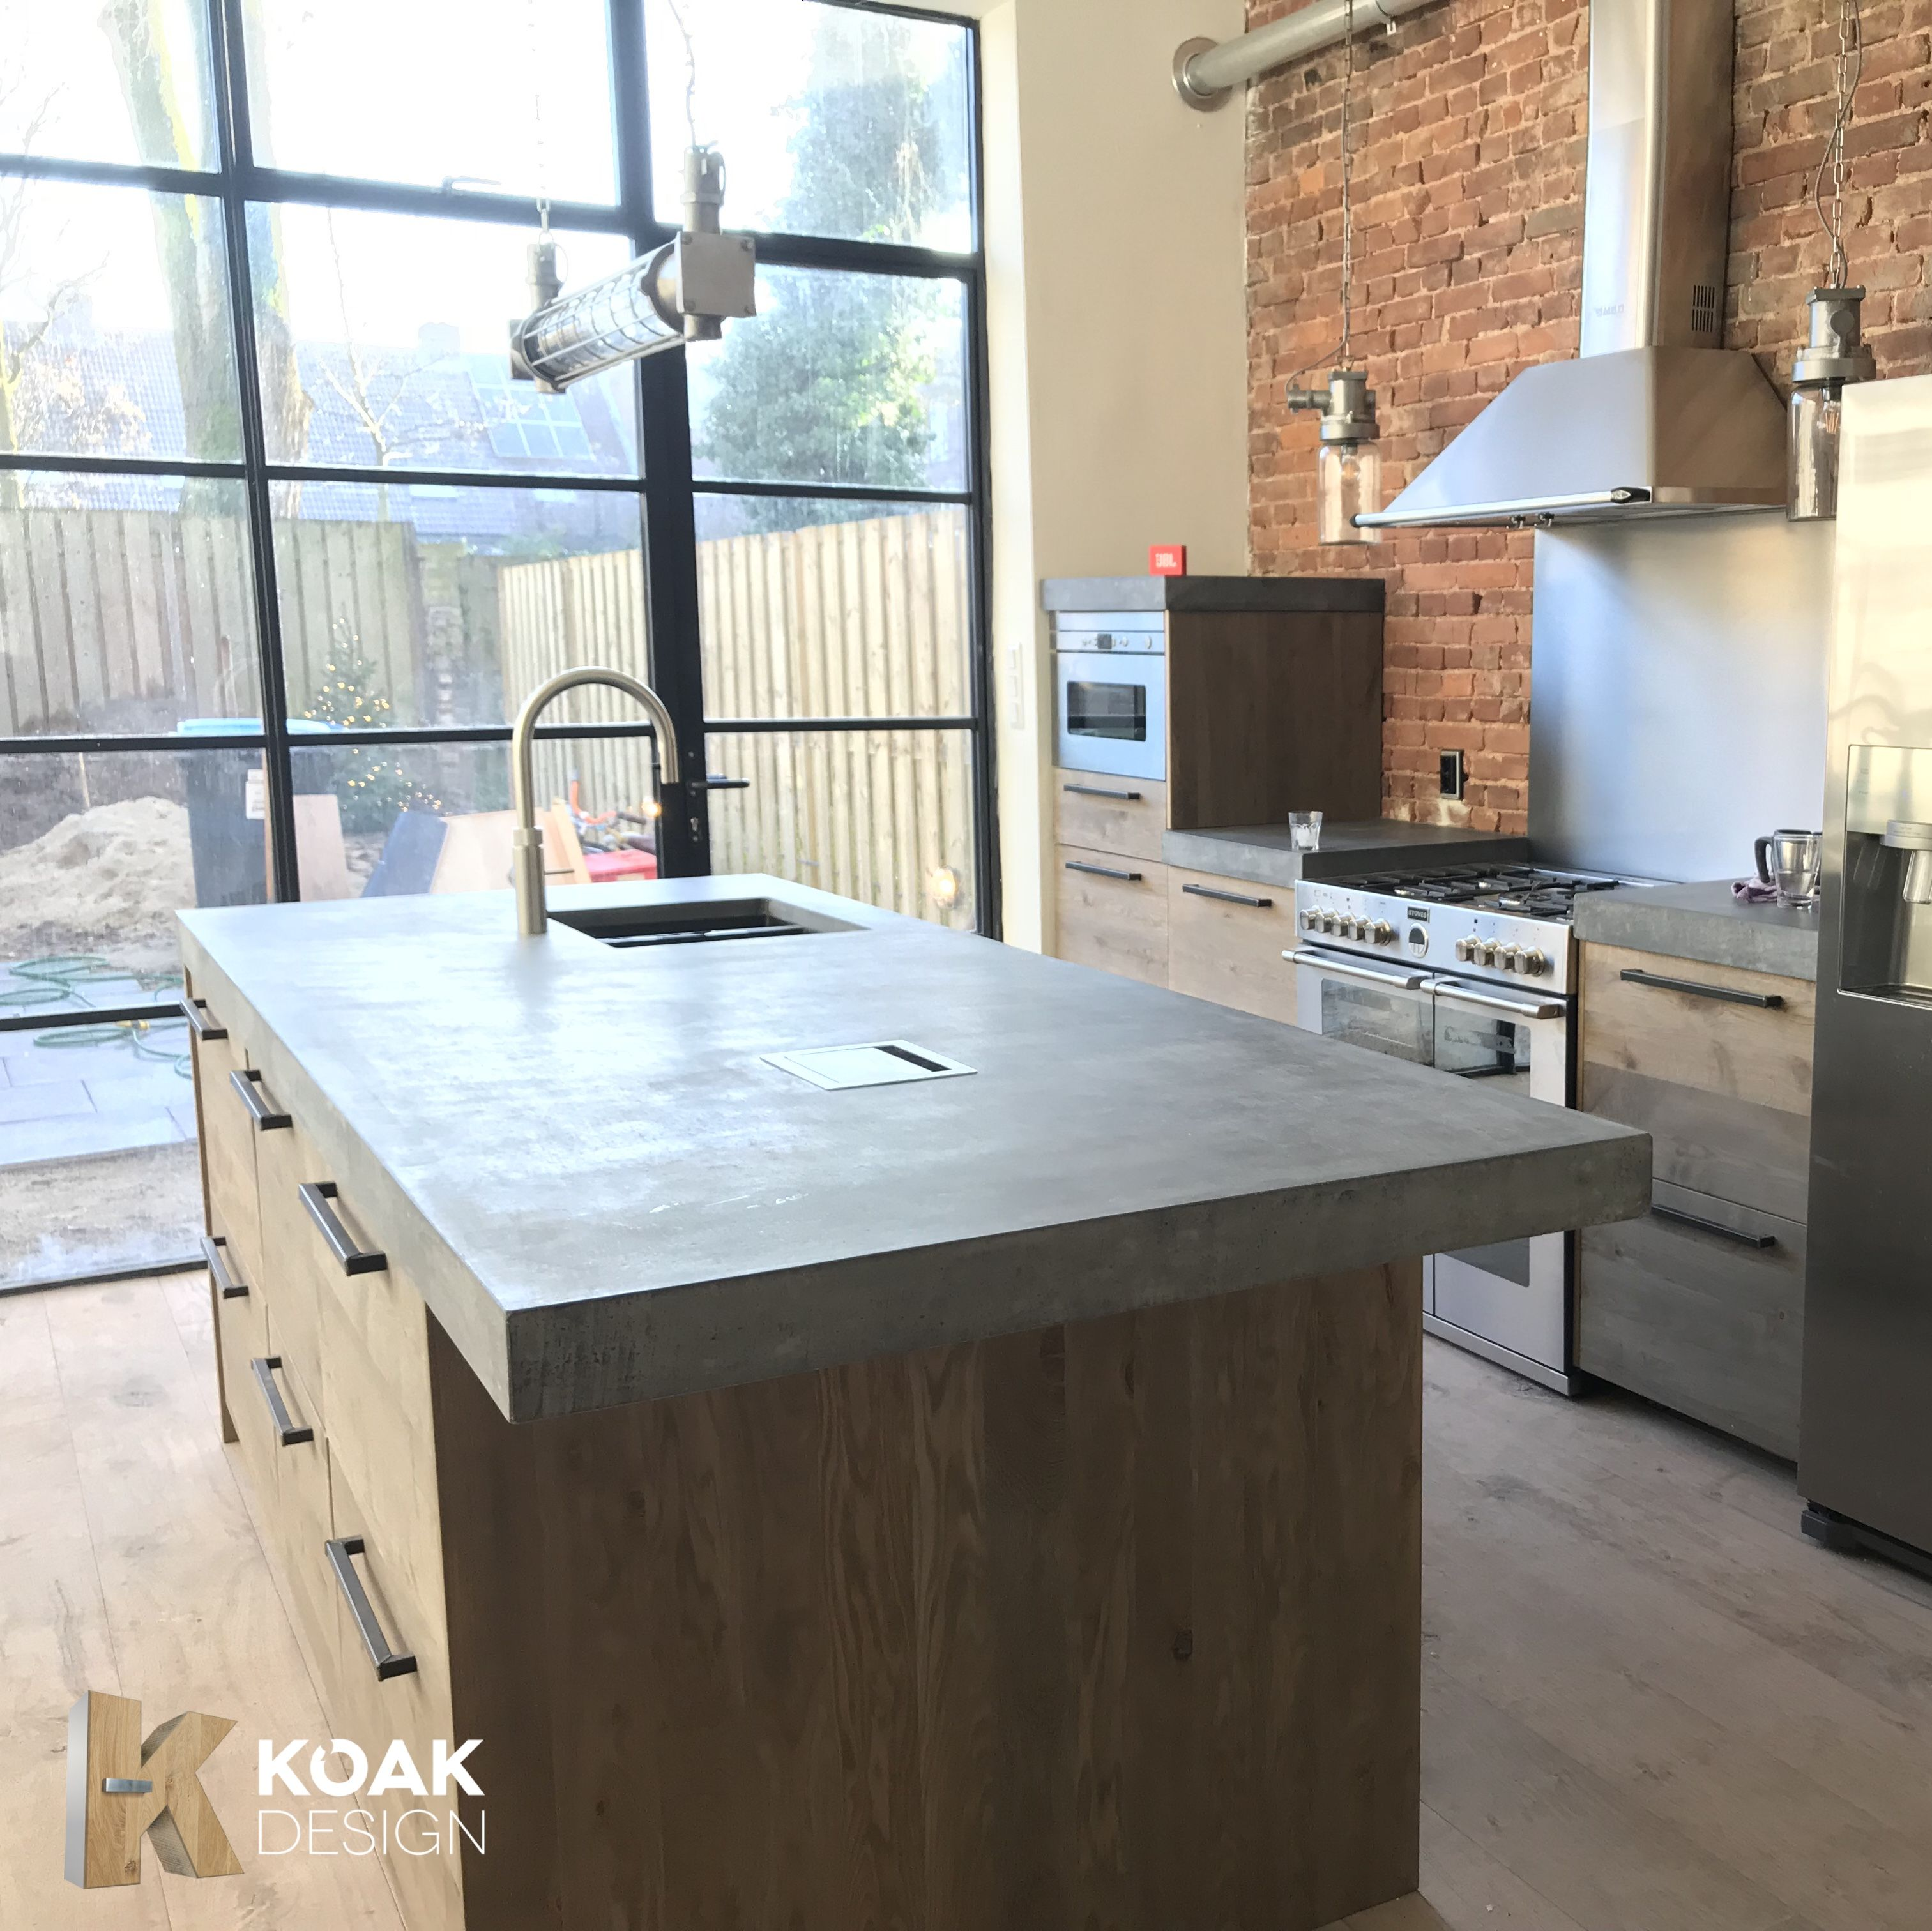 Charmant Ikea Kitchen With Oak Fronts Of Koak Design And A Concrete Countertop.  Color Old 423